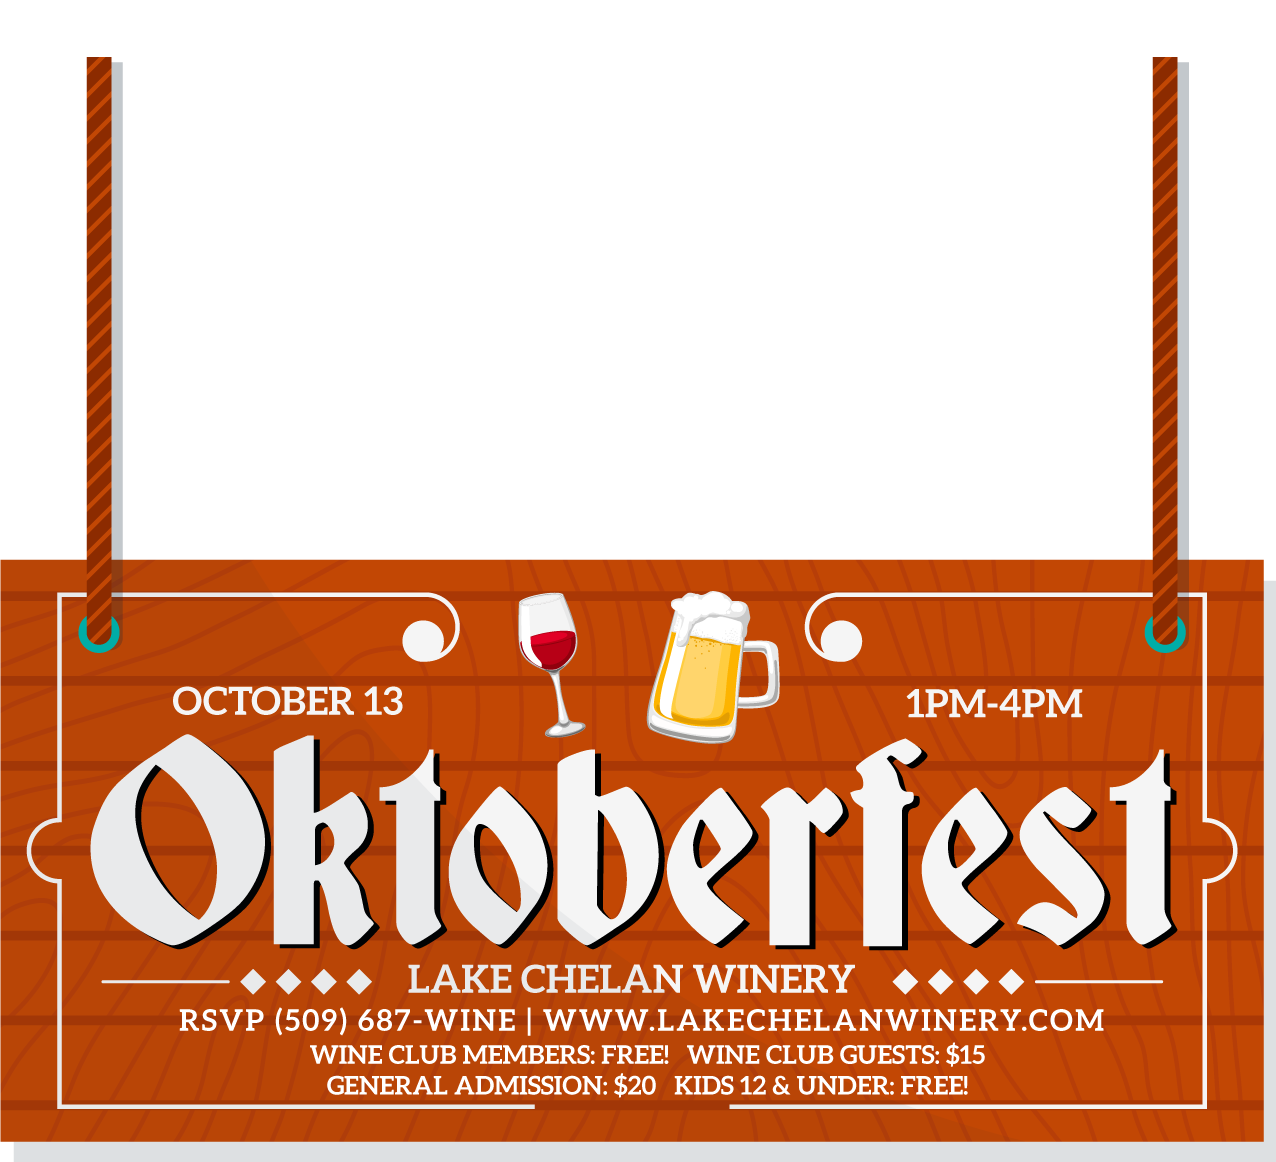 Oktoberfest Wine Club party @ Lake Chelan Winery